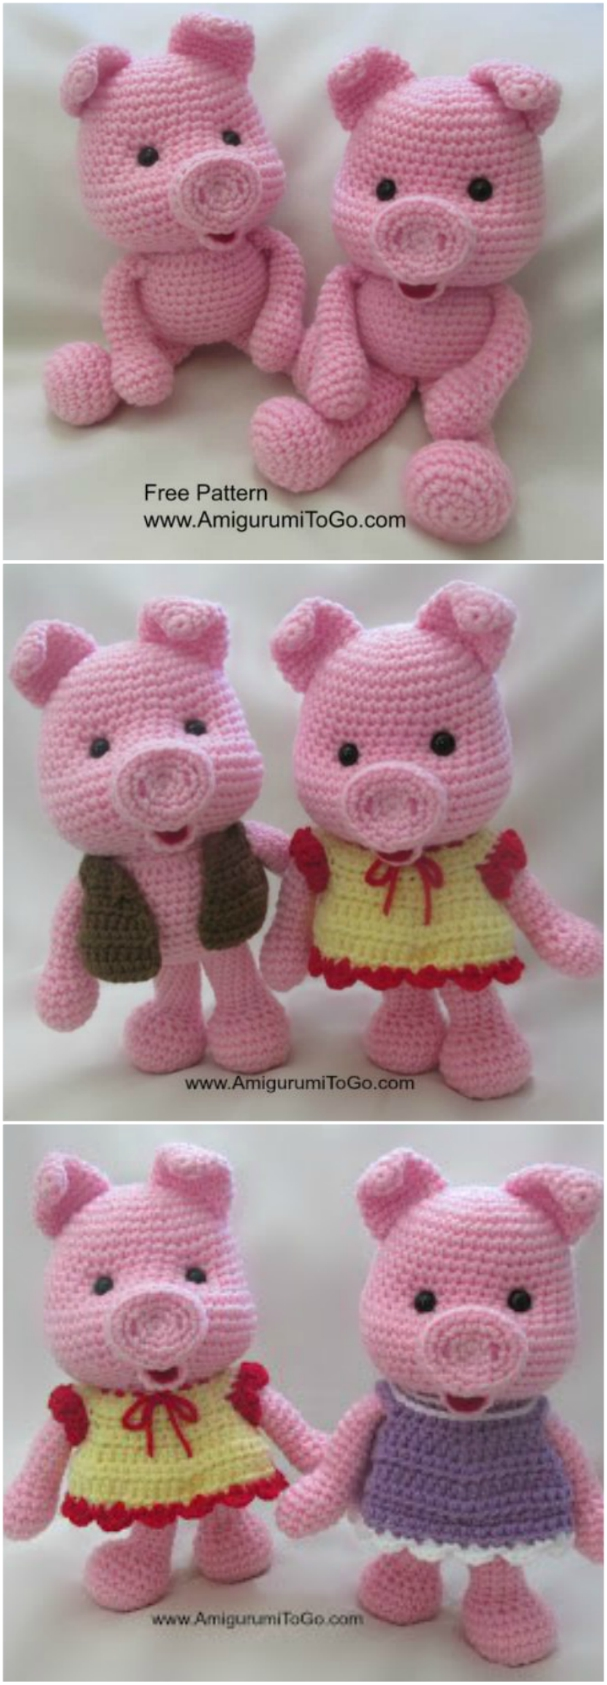 Ravelry: Piglet the Pig pattern by Holly's Hobbies | 1685x607